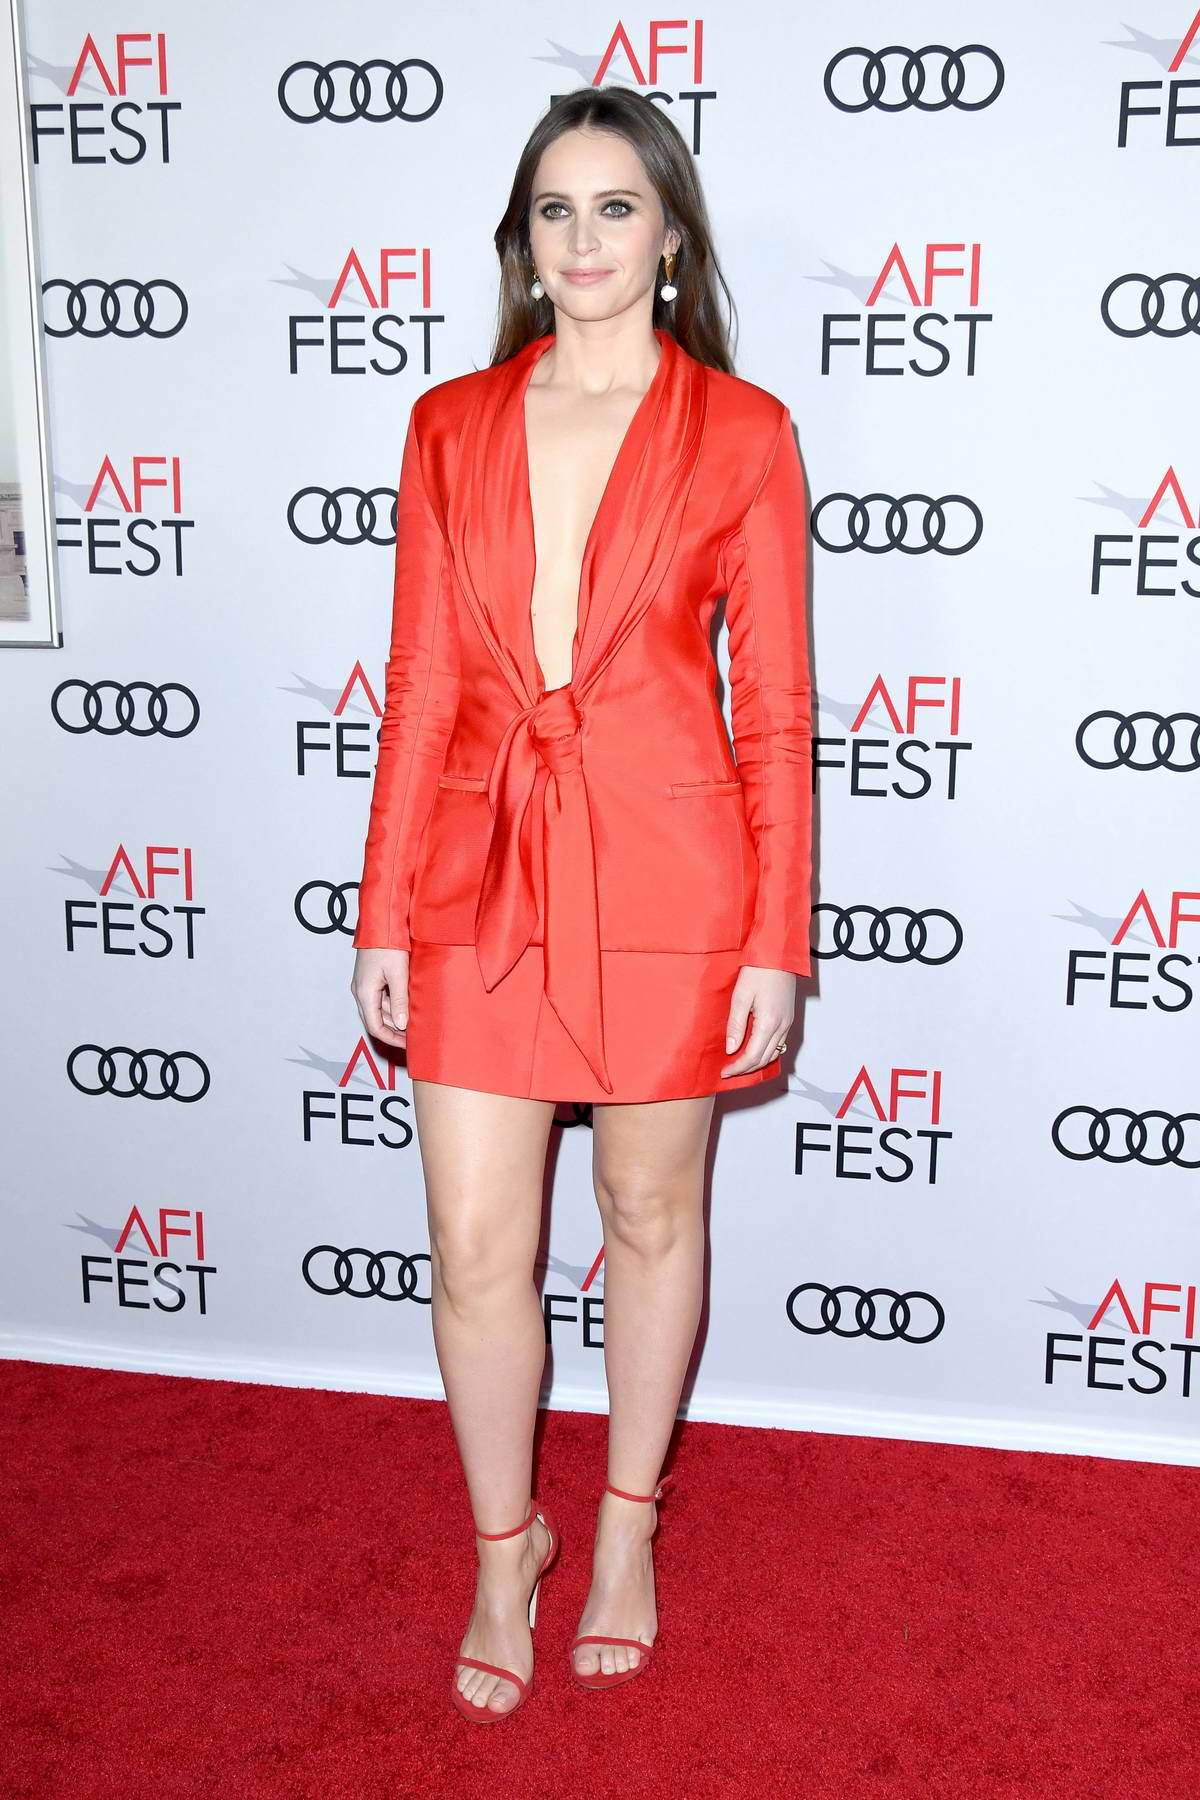 Felicity Jones attends 'On The Basis Of Sex' Premiere and Opening Ceremony at AFI Fest in Los Angeles